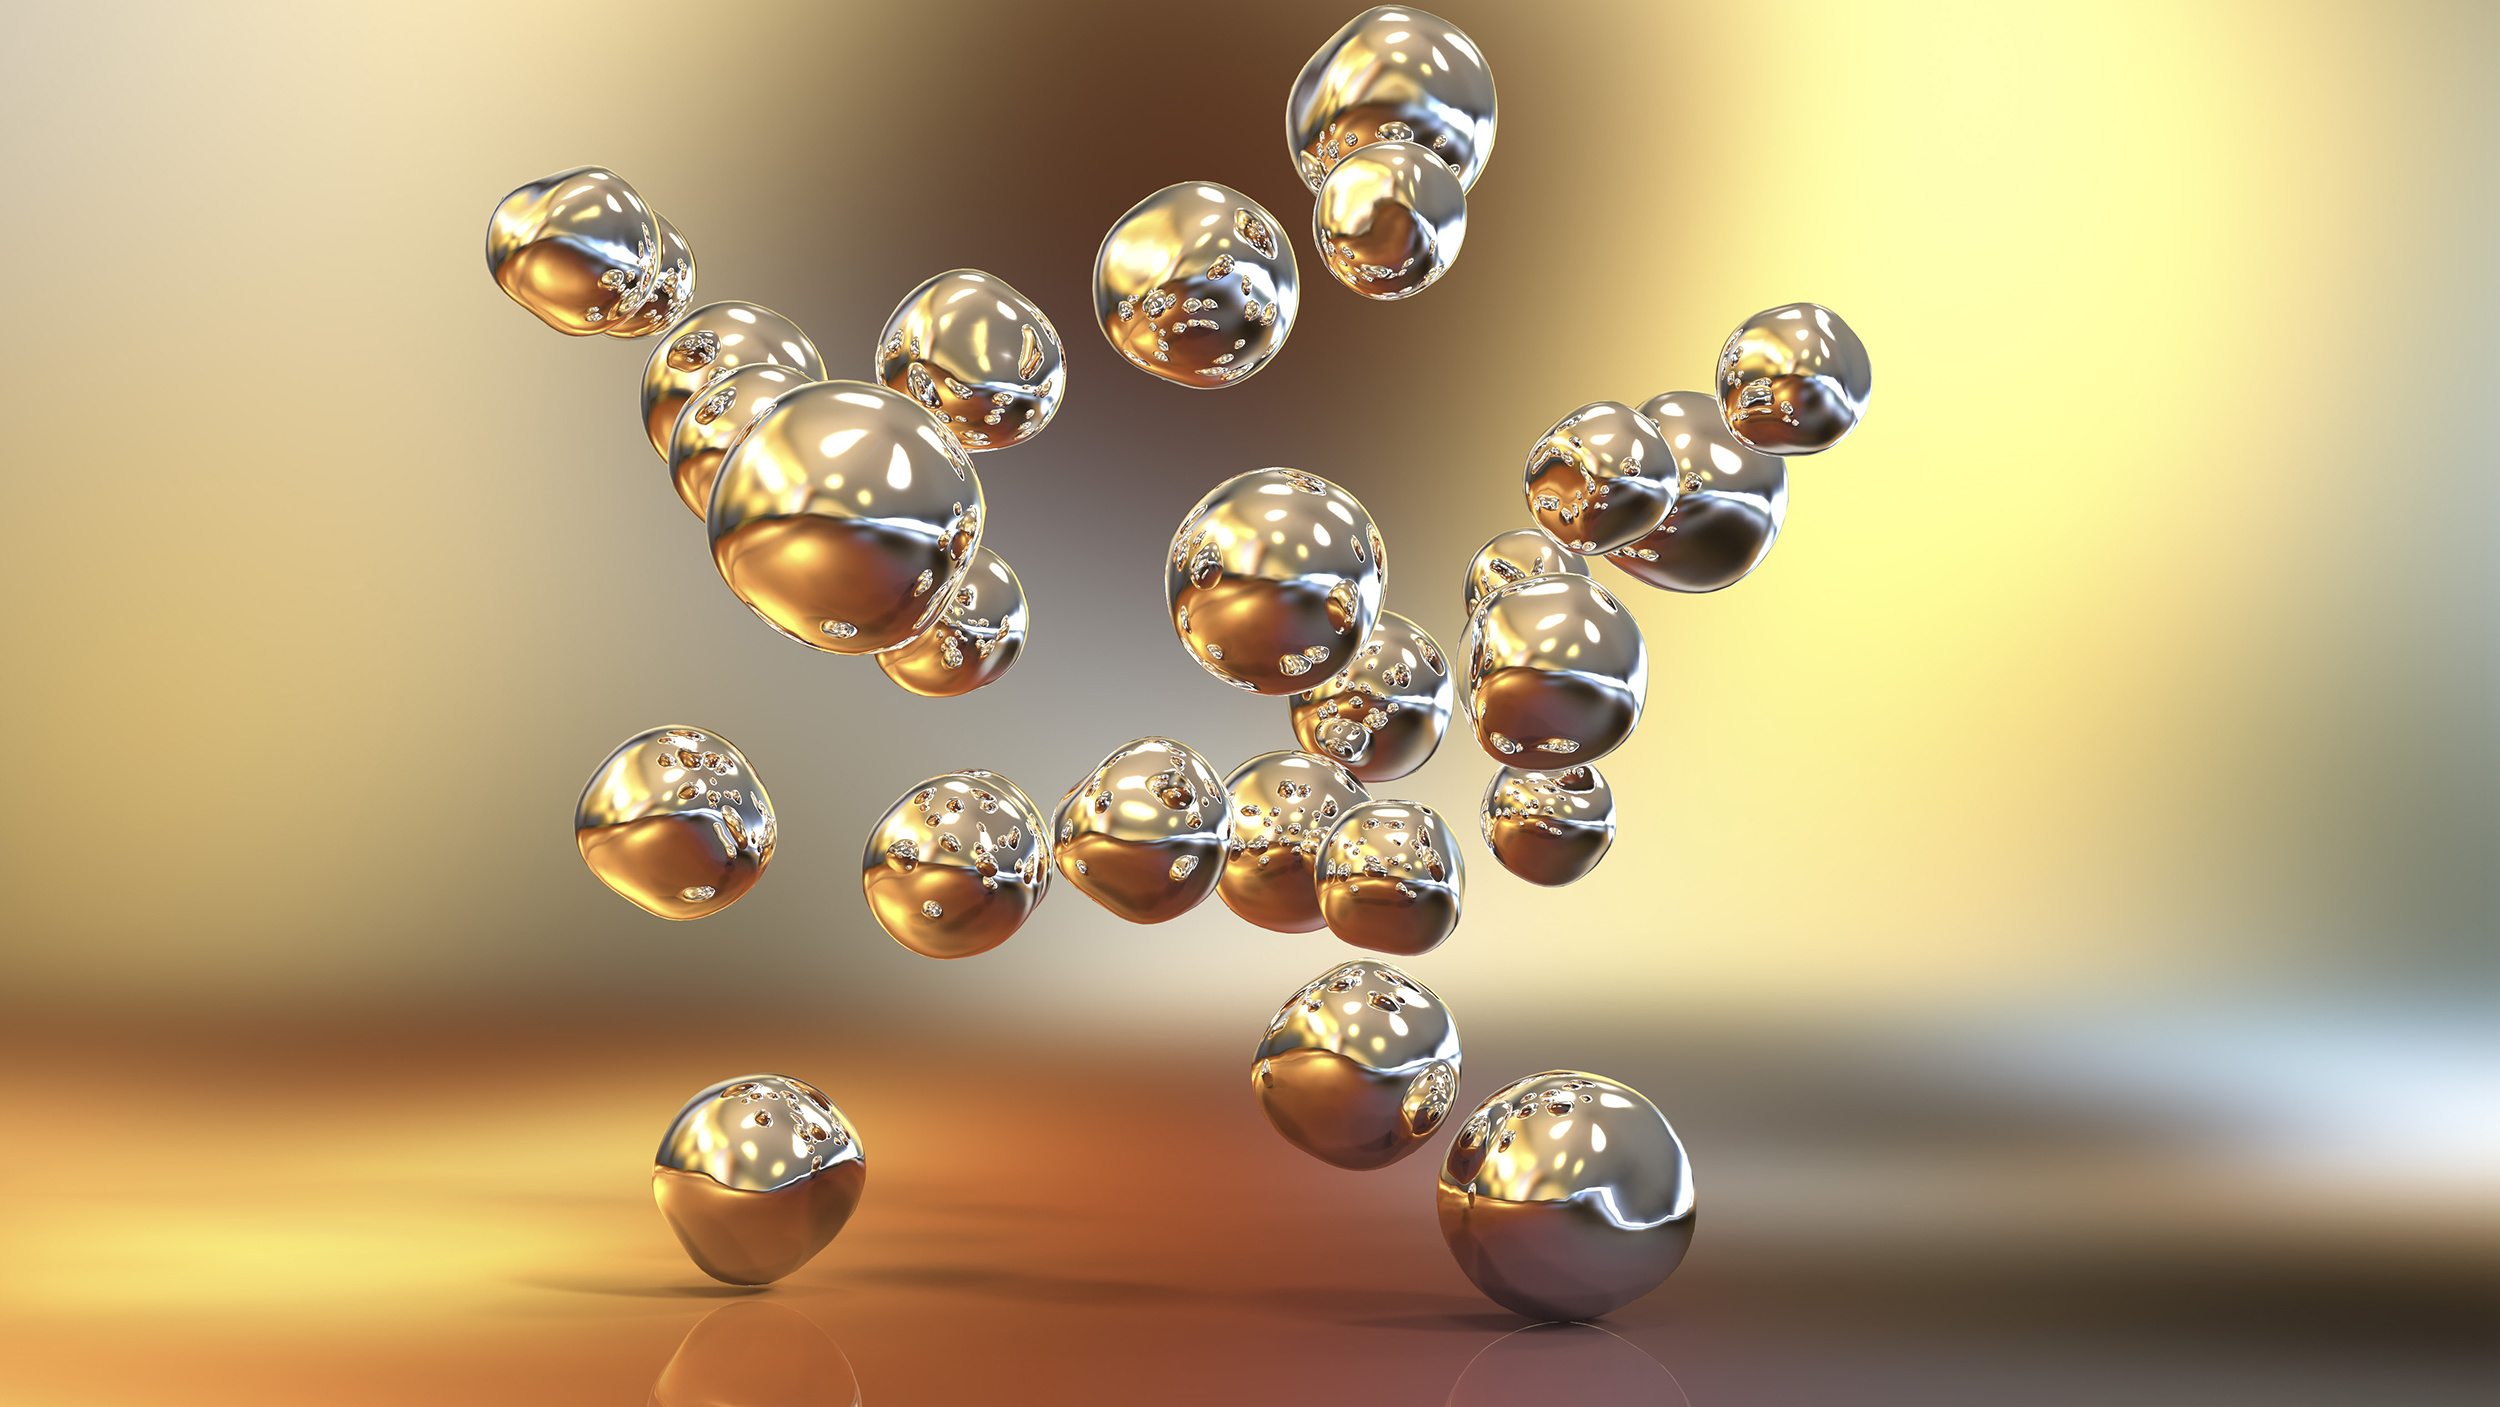 New method extracts gold from liquid waste - Big Think